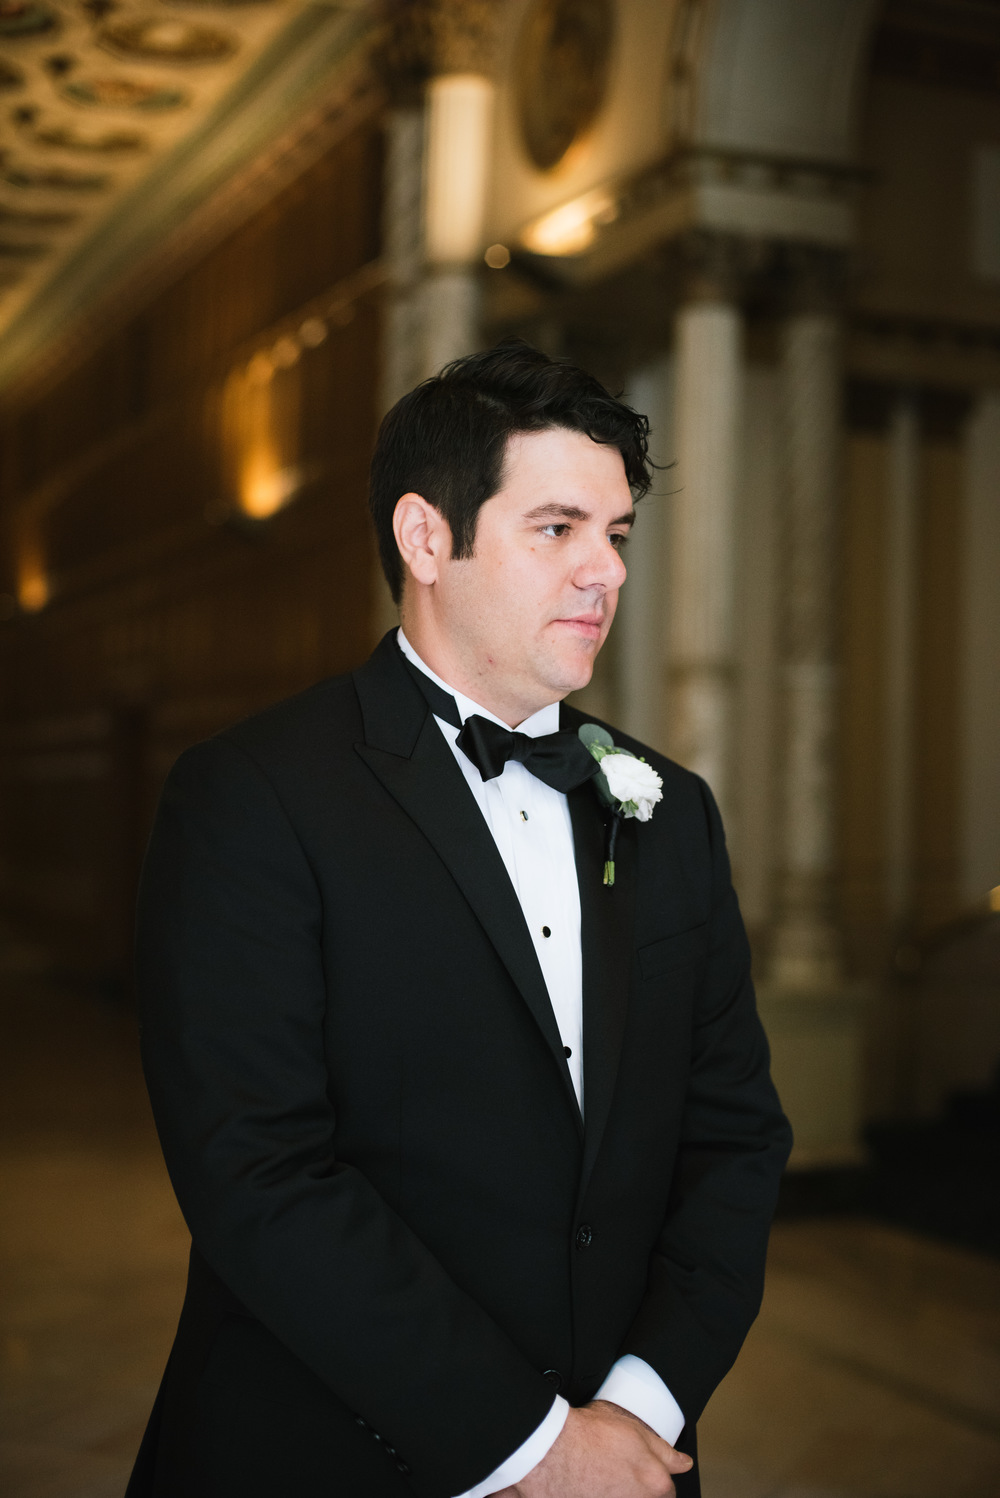 Biltmore Hotel Los Angeles Wedding © Abigail R Collins Photography